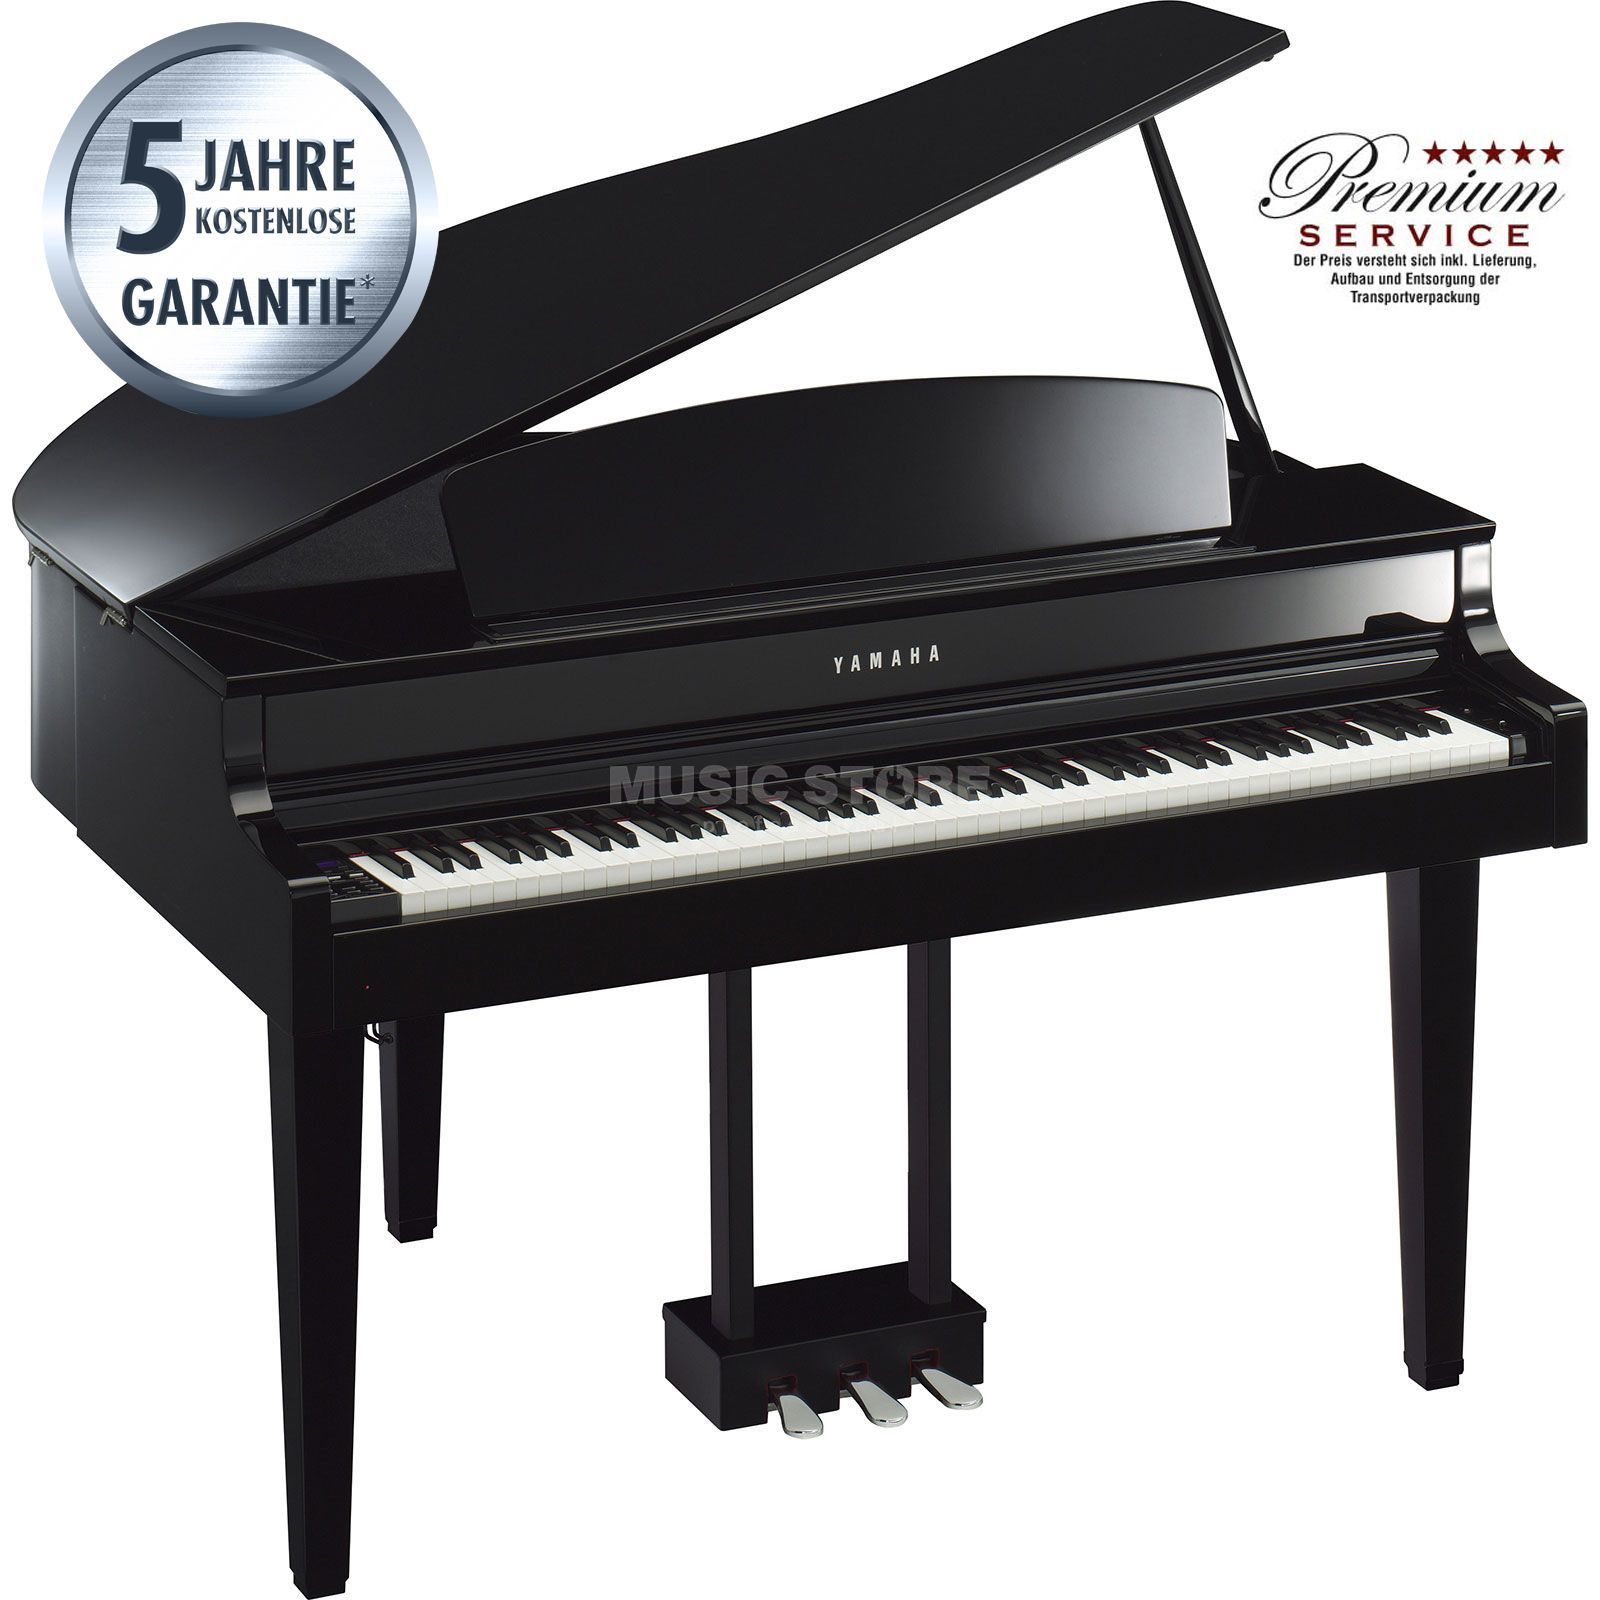 Yamaha Clavinova CLP-565 GP PE Digital Grand Piano Black Image du produit